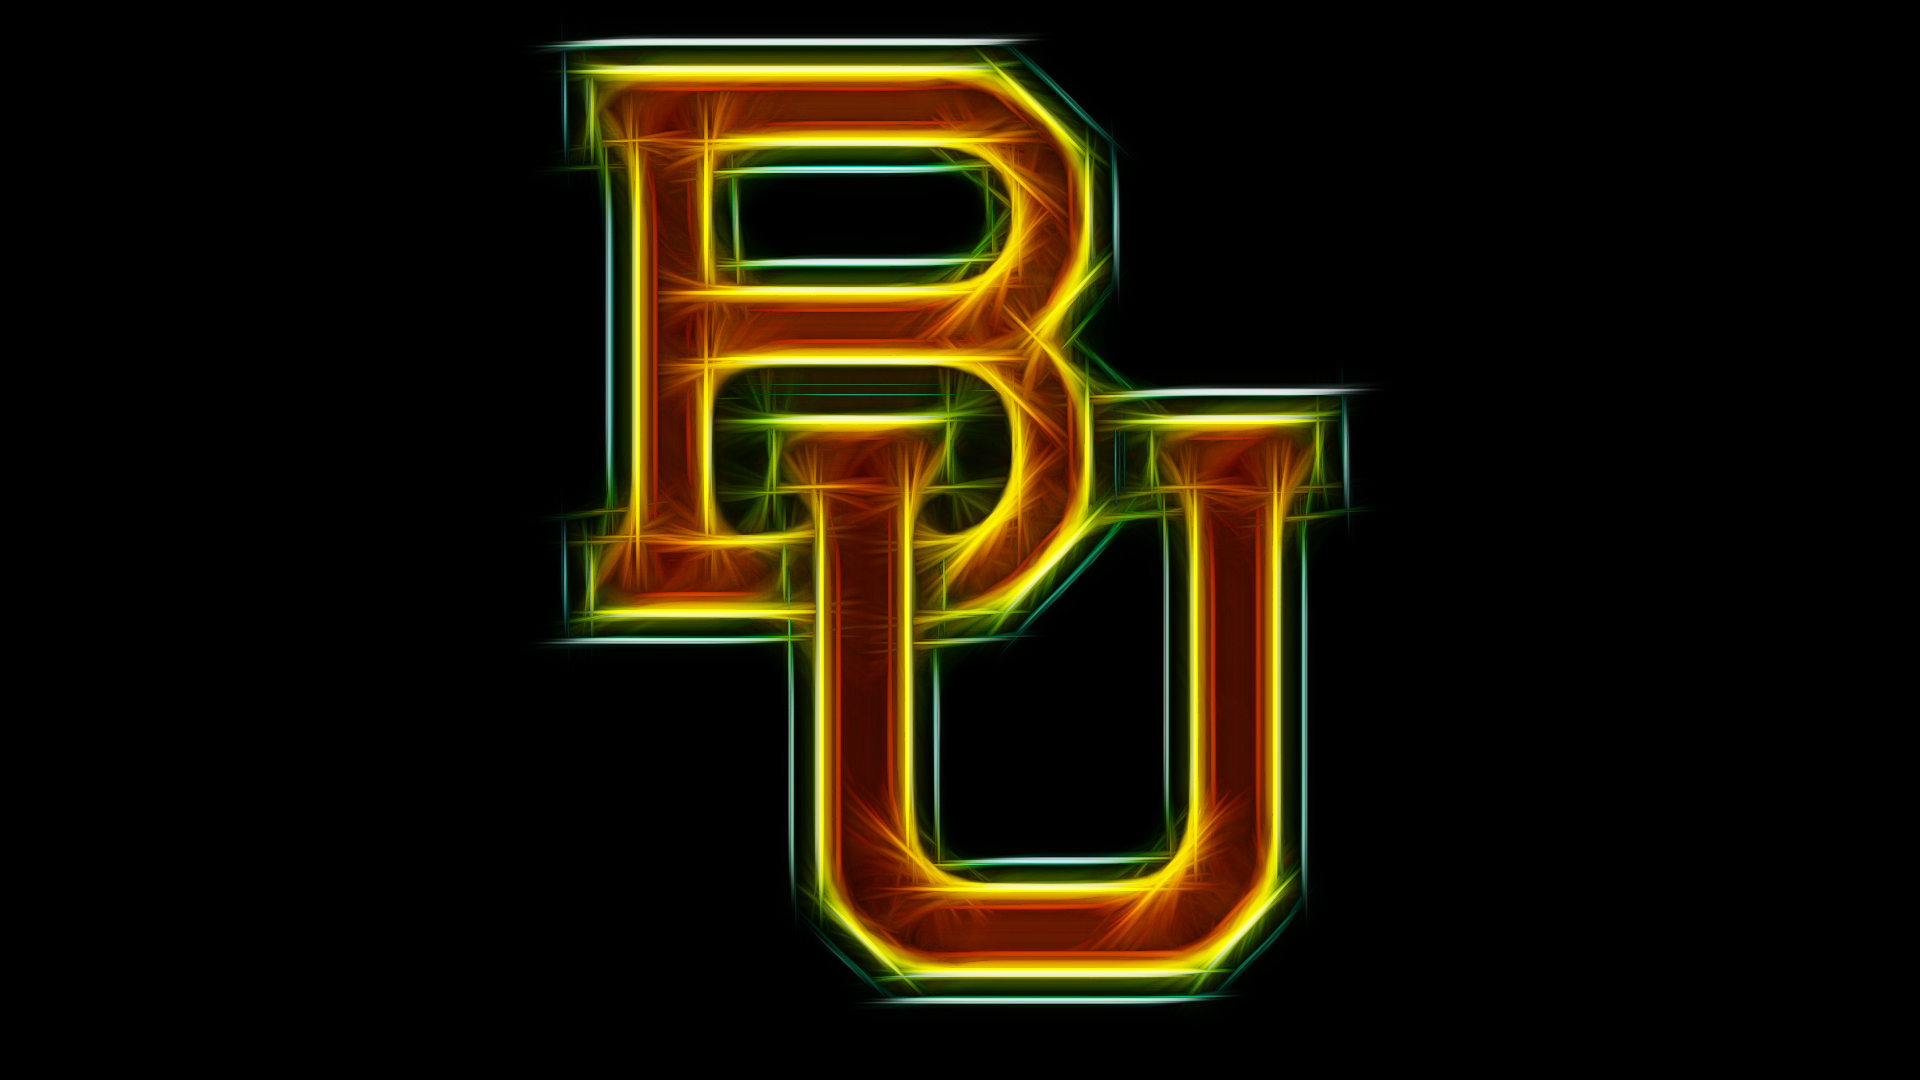 Baylor University by TheBlackSavior 1920x1080